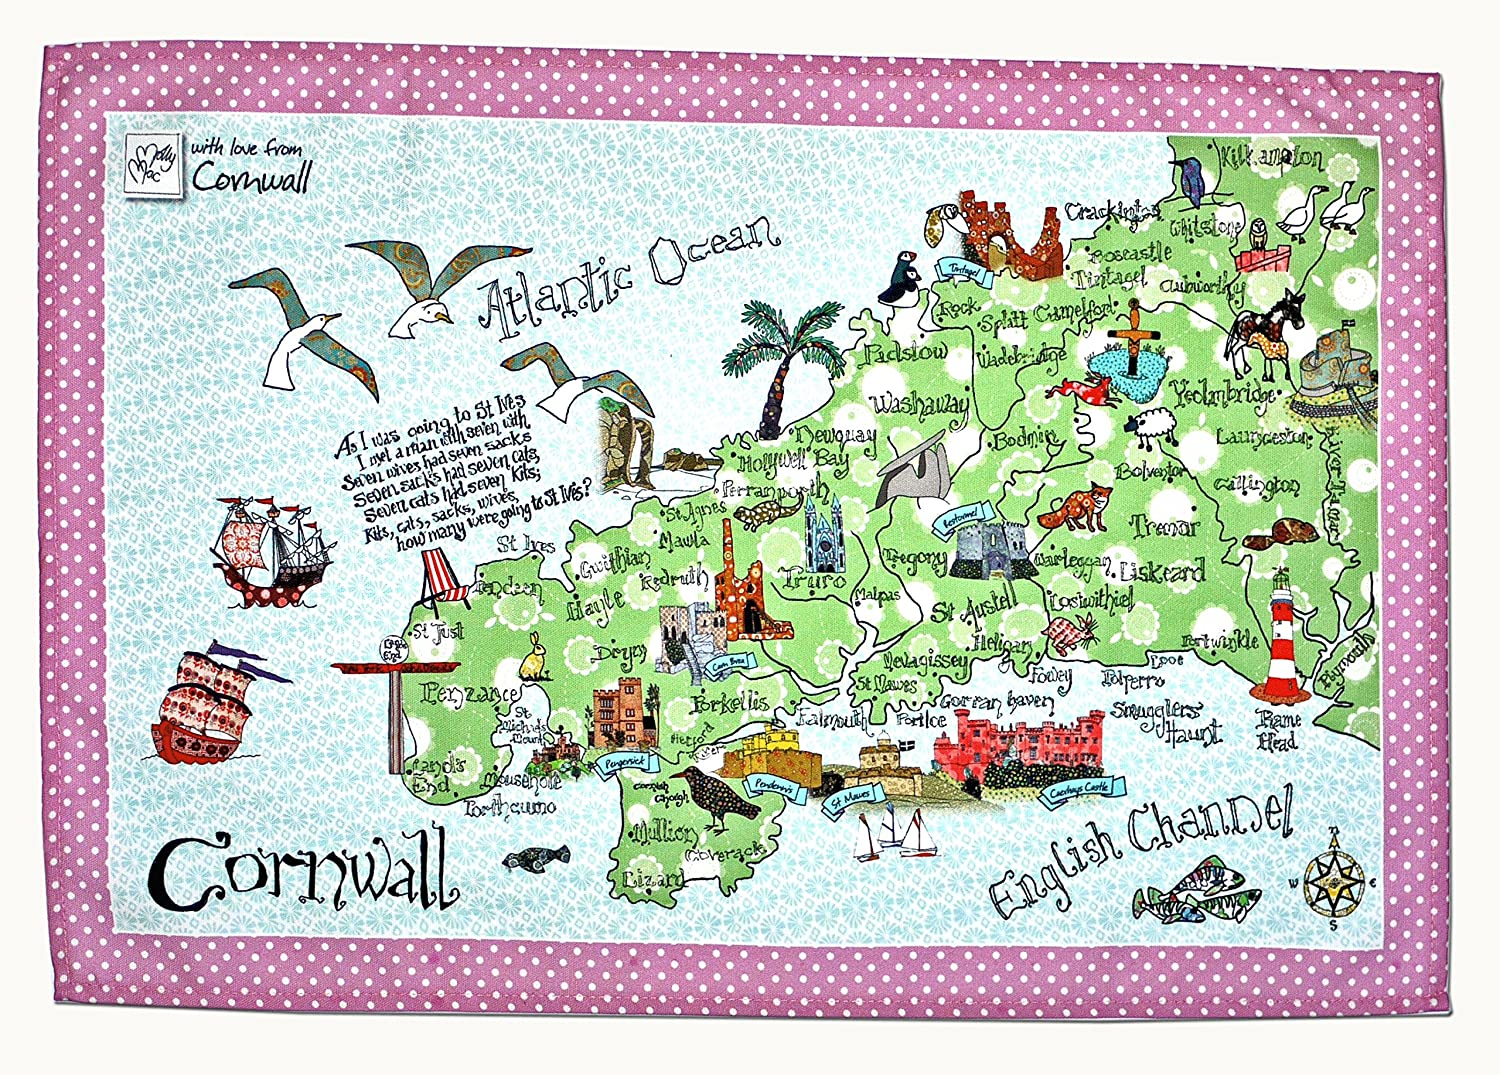 MollyMac MAP At the price of surprise Cornwall Tea Towel Kitchen Decor C Max 59% OFF Pretty Home